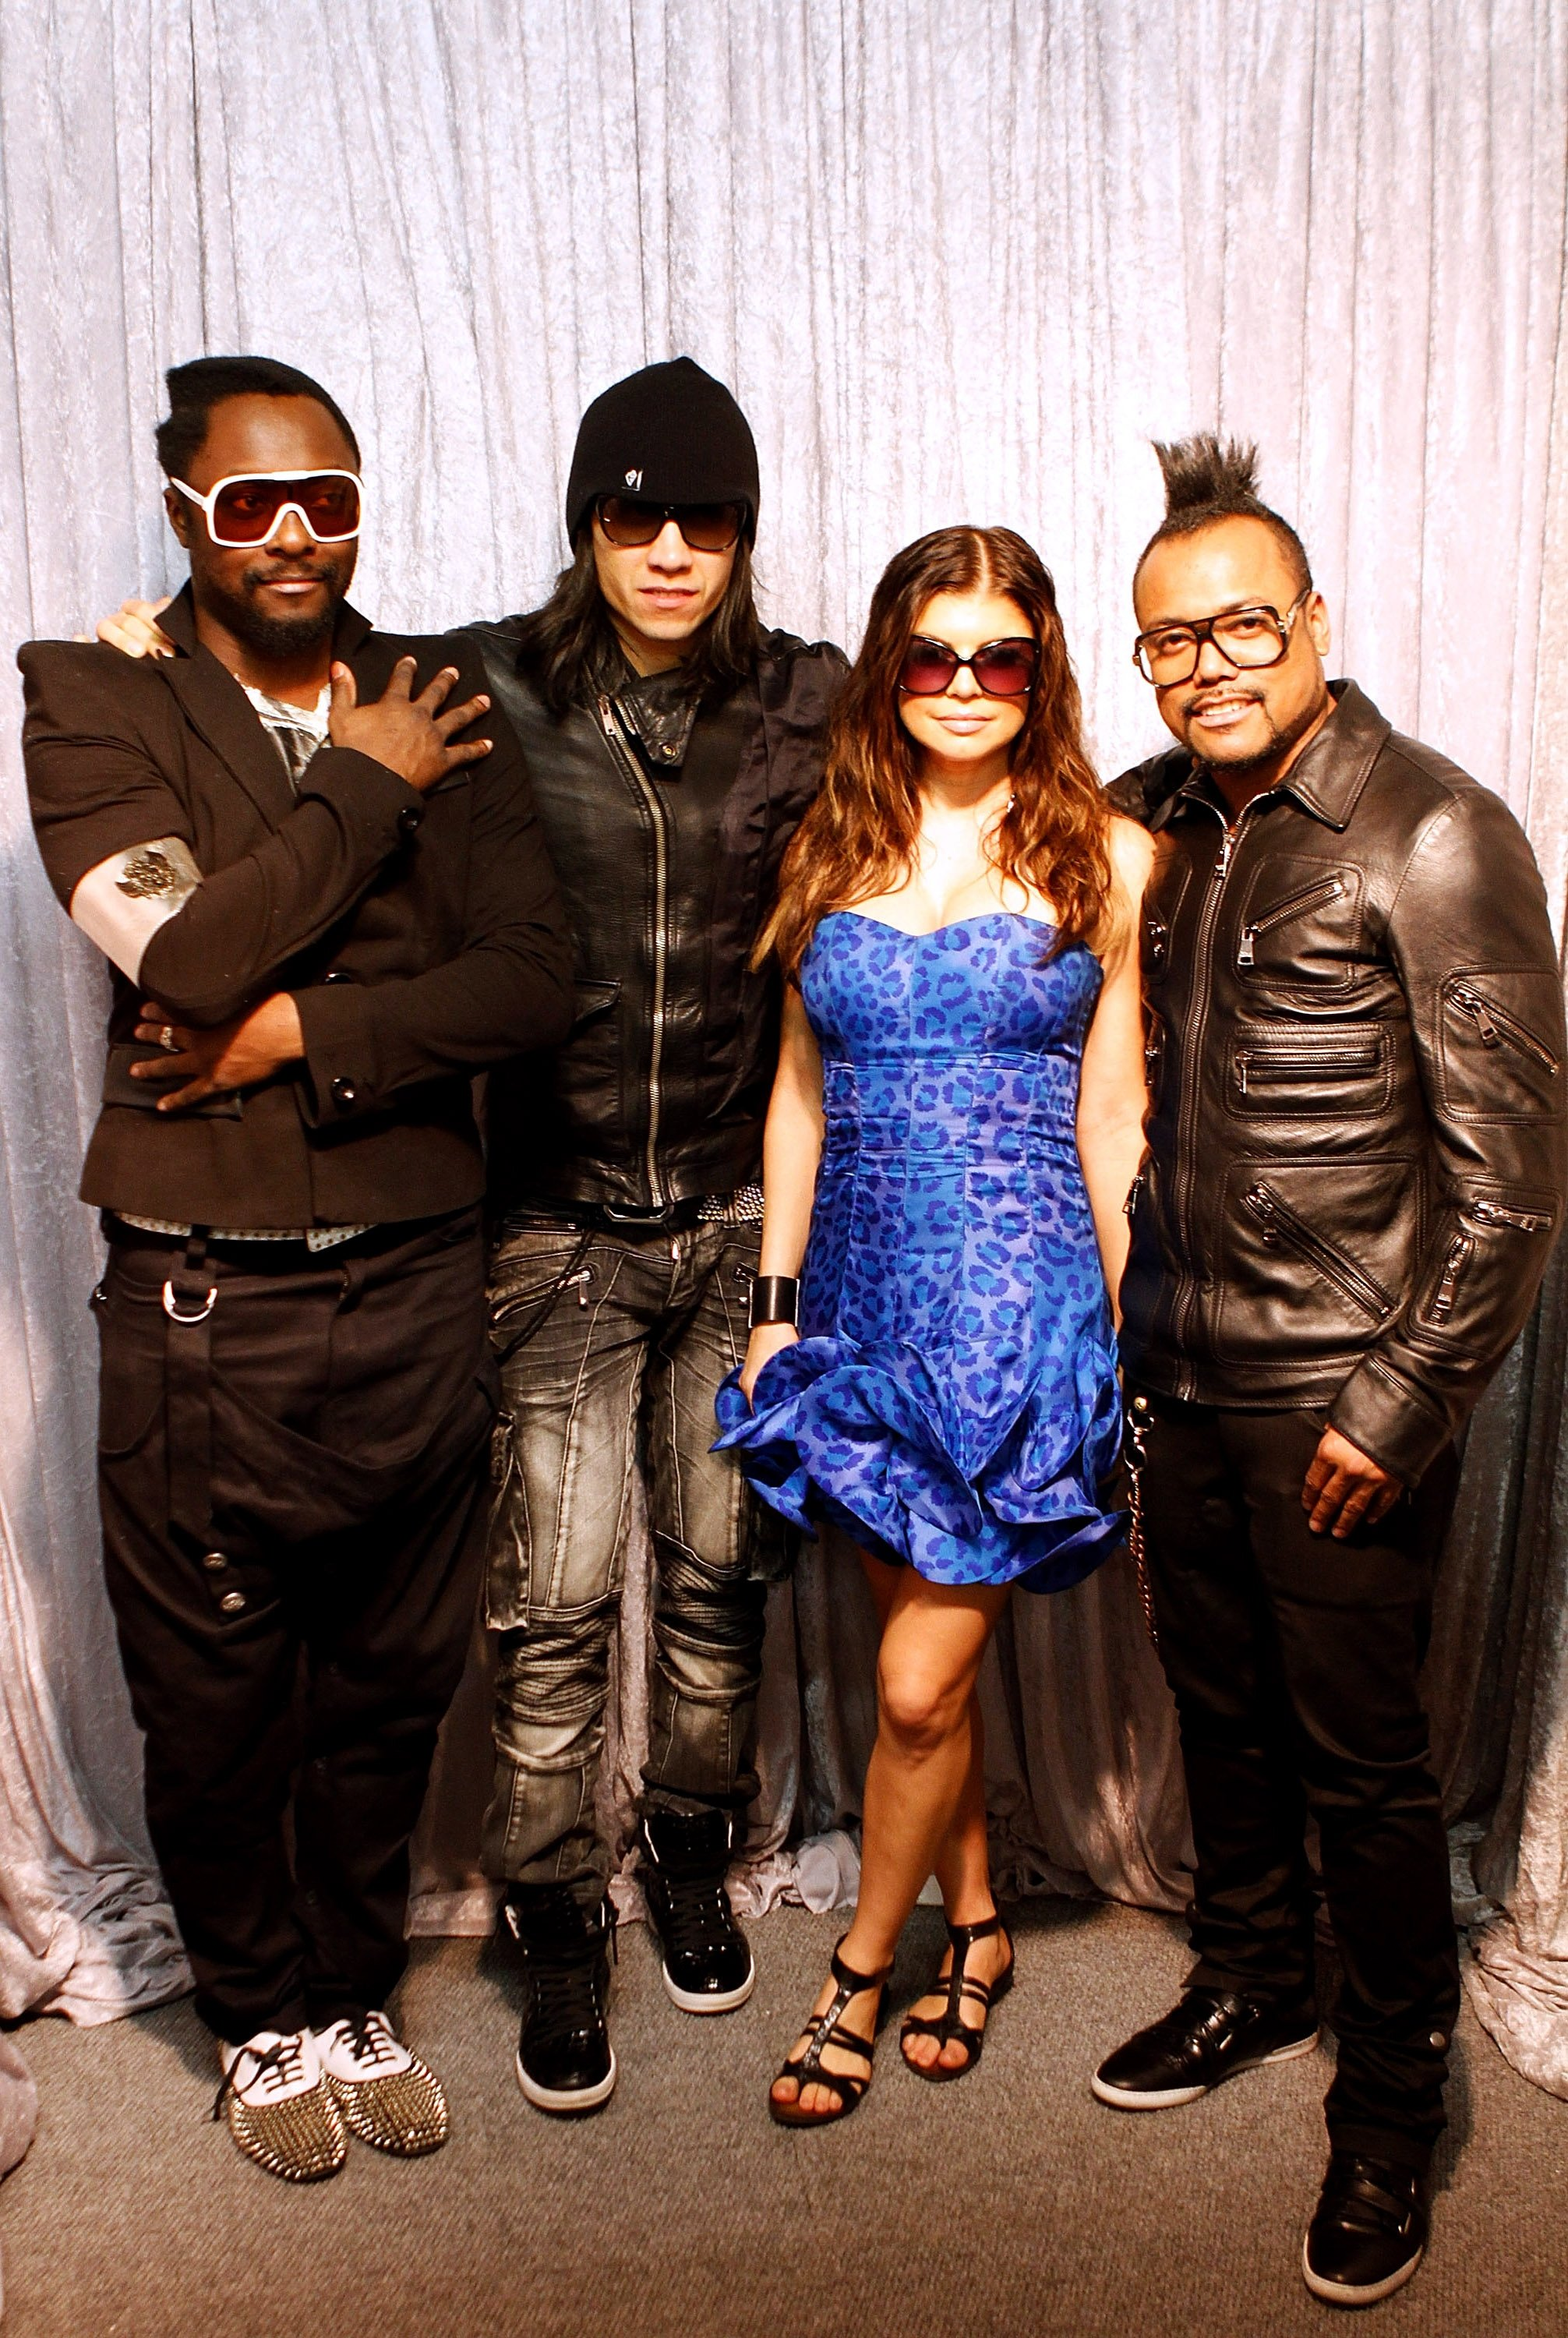 Will.i.Am, Taboo, Fergie and Apl.De.Ap of the Black Eyed Peas pose for photographers before the FIFA World Cup Kick-off Celebration Concert at Soccer City in Johannesburg, South Africa on June 9, 2010